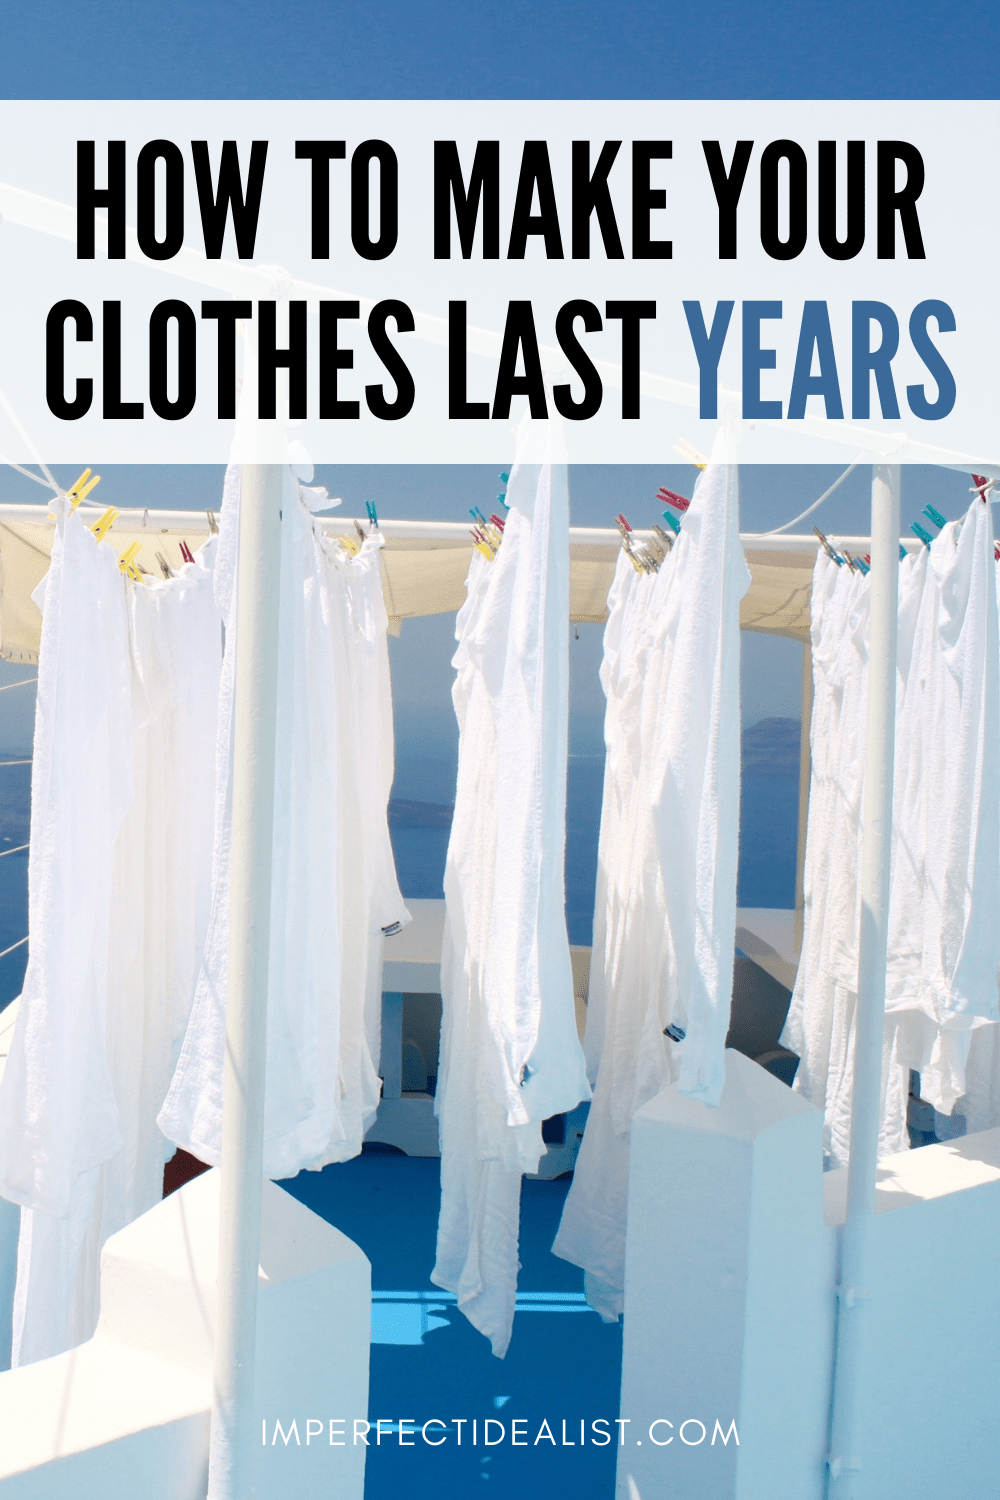 Pinterest pin that reads 'how to make your clothes last years' against a photo of white fabrics hanging out to dry on a clear day